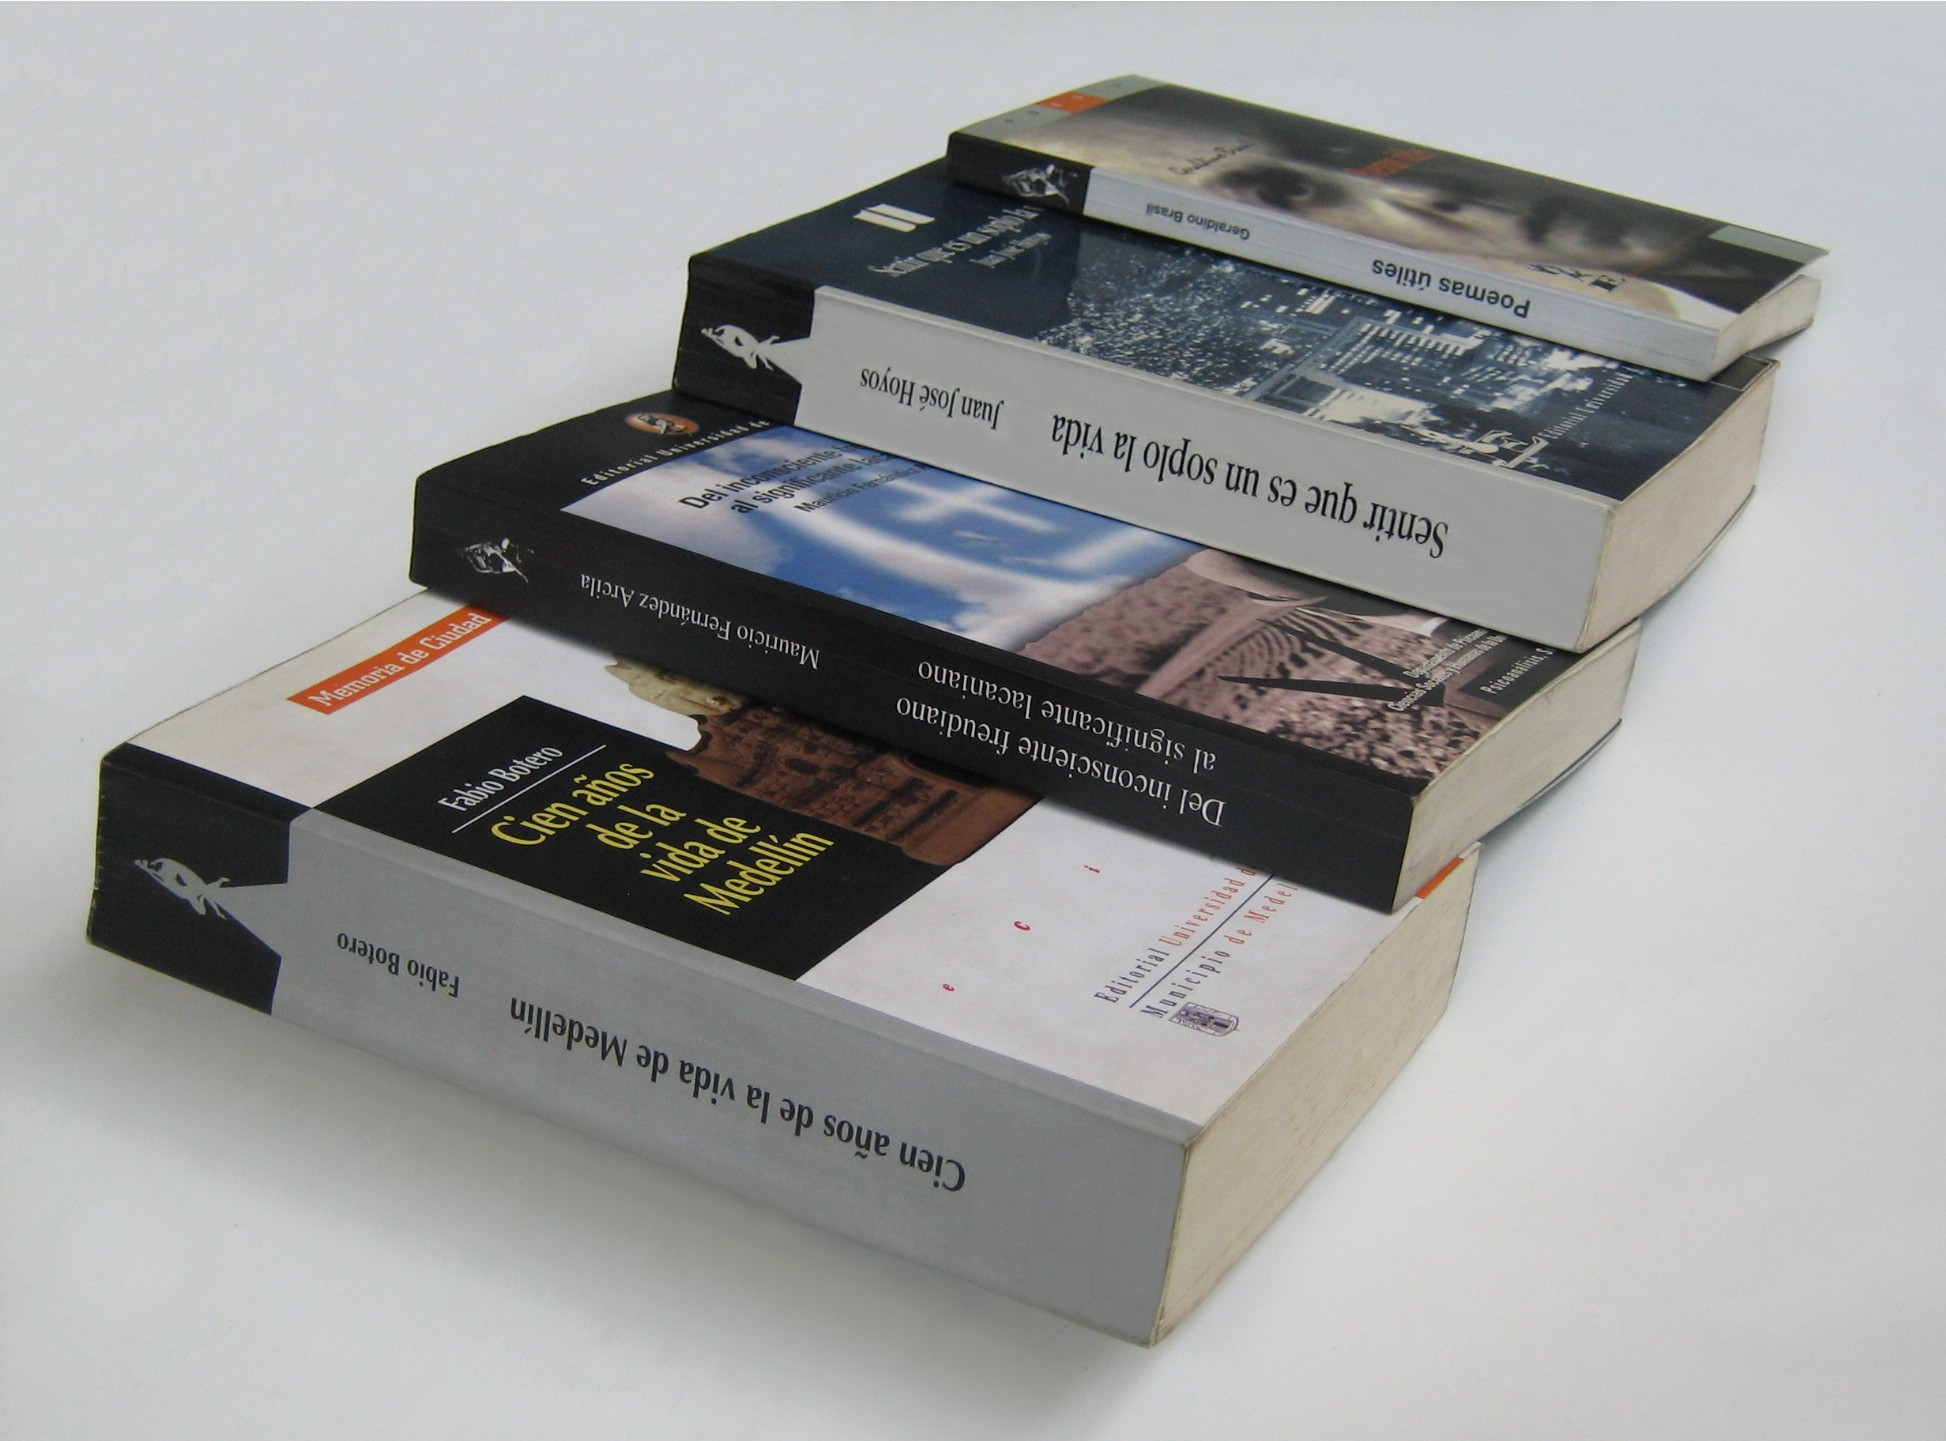 Photo of a stack of books printed in Spanish